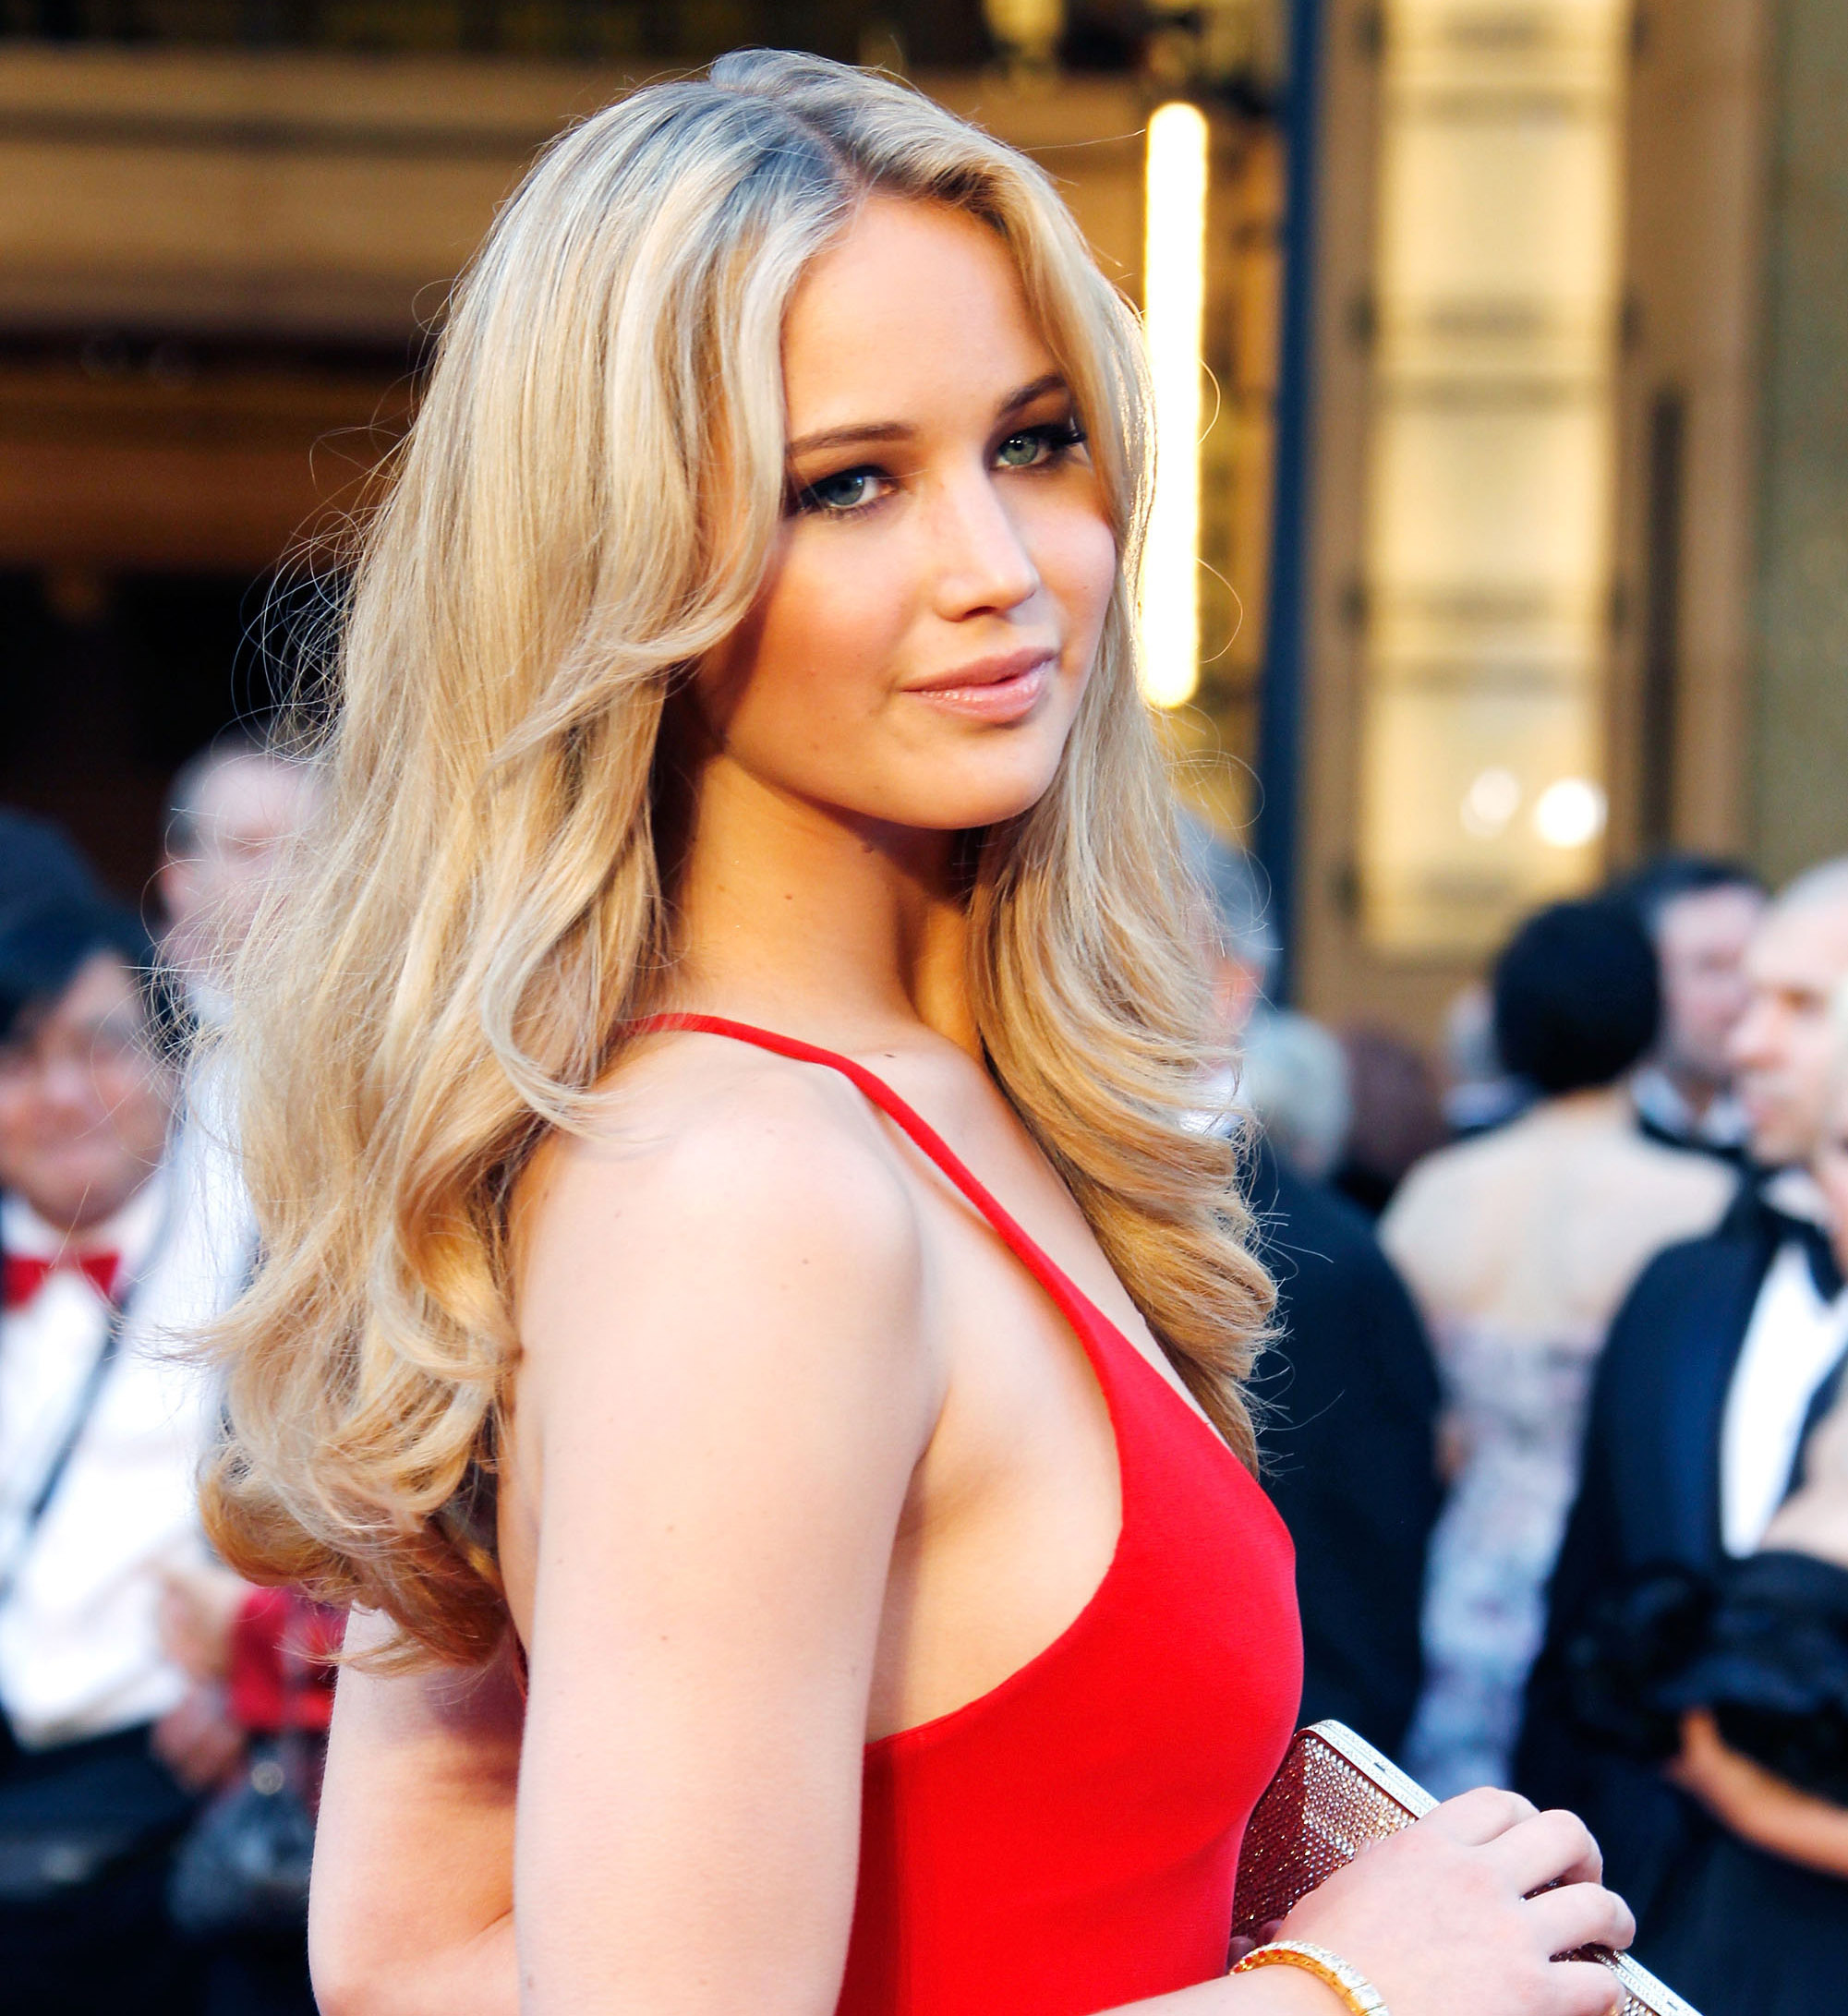 Jennifer Lawrence, Jennifer Lawrence photos, hot celebrity women